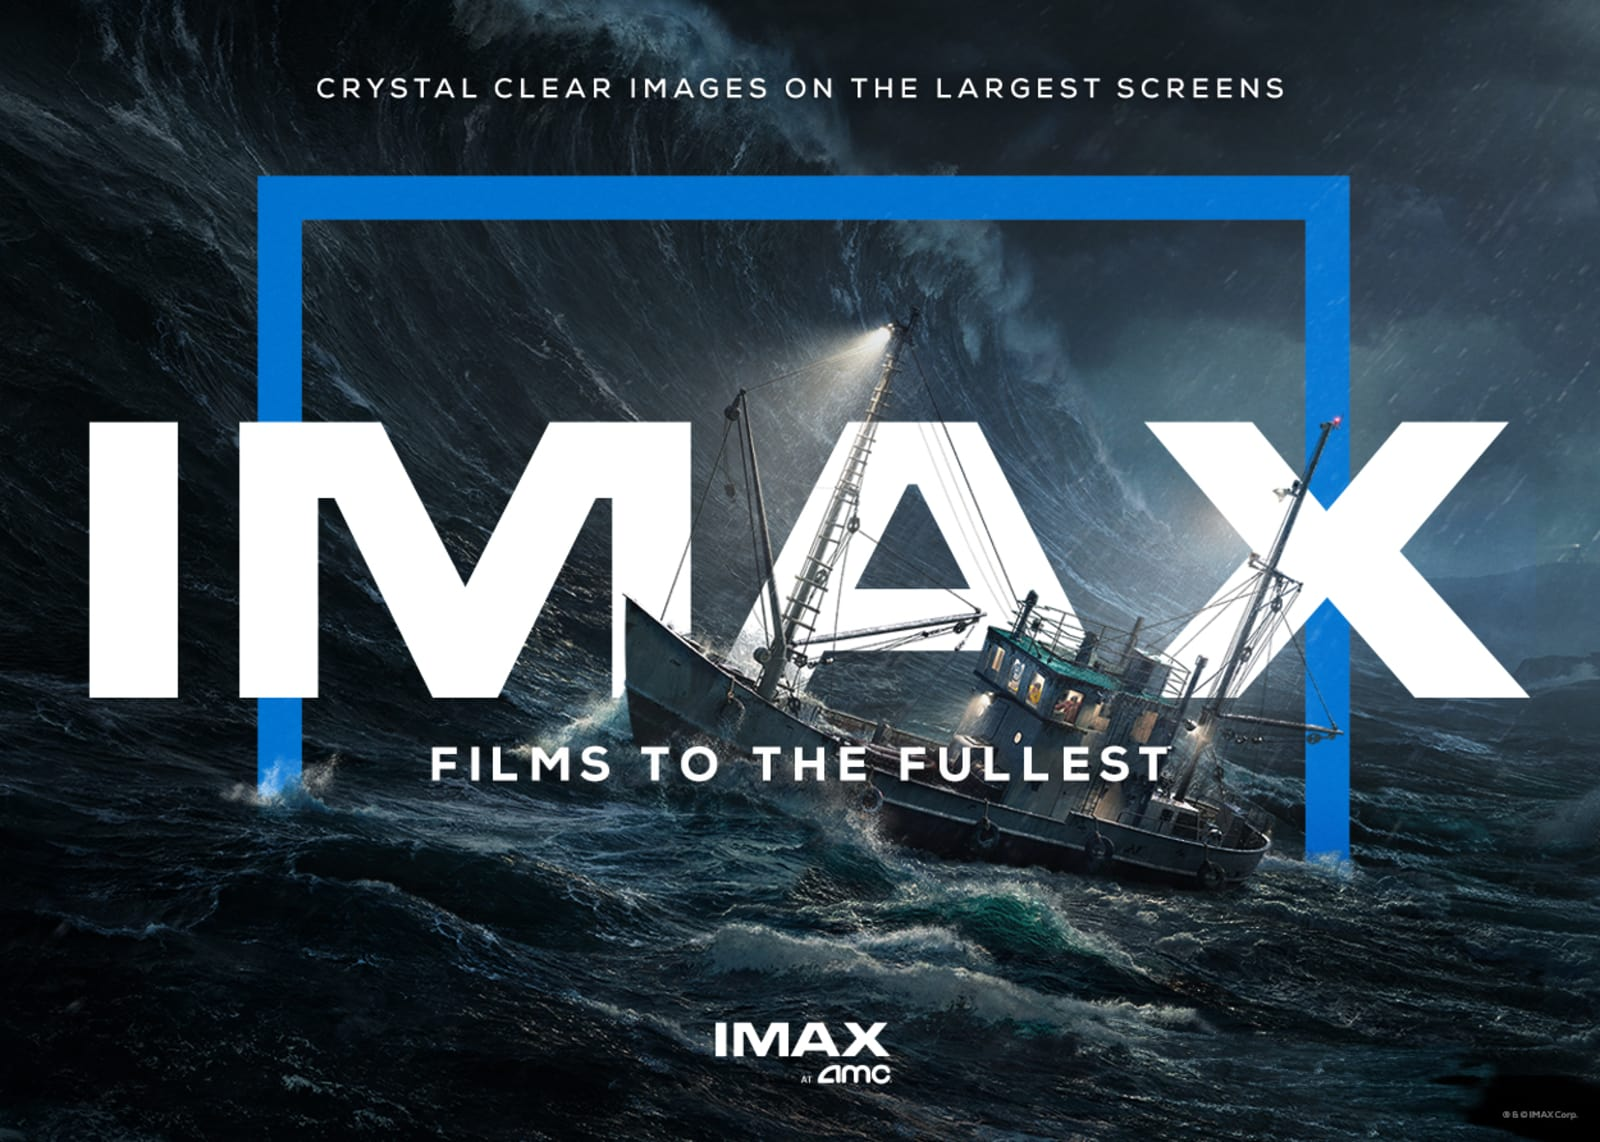 See it in IMAX at AMC Theatres